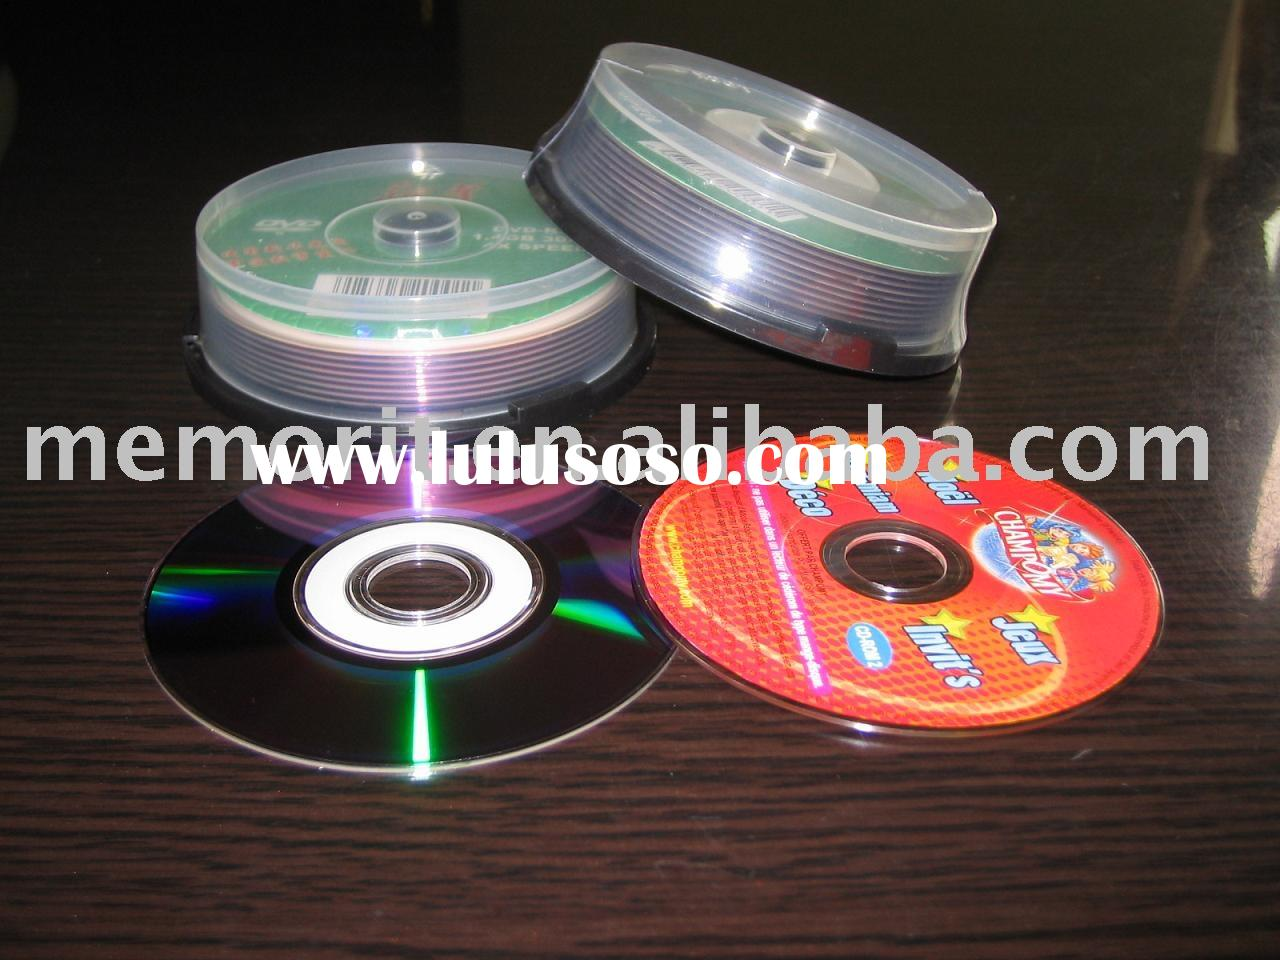 CD/ CDR / DVD / DVDR disc with Packaging